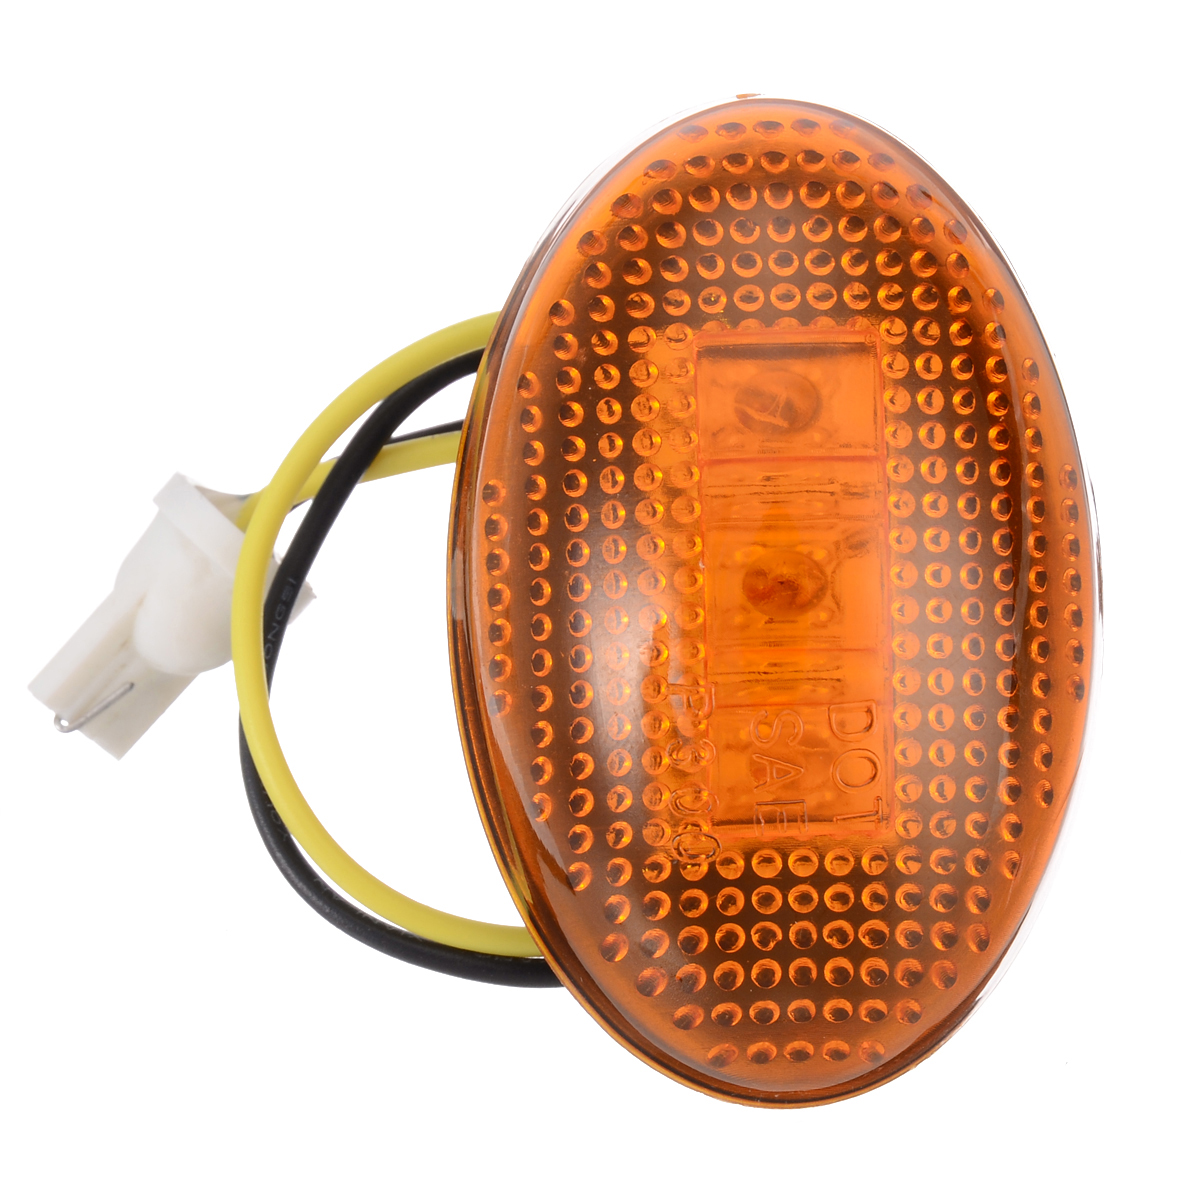 2 Pair 12V Front Rear Fender Side Marker Light 3LED Car Signal Lamp 8C3Z 15442 B Amber Red For Ford F350 1999 2010 in Signal Lamp from Automobiles Motorcycles